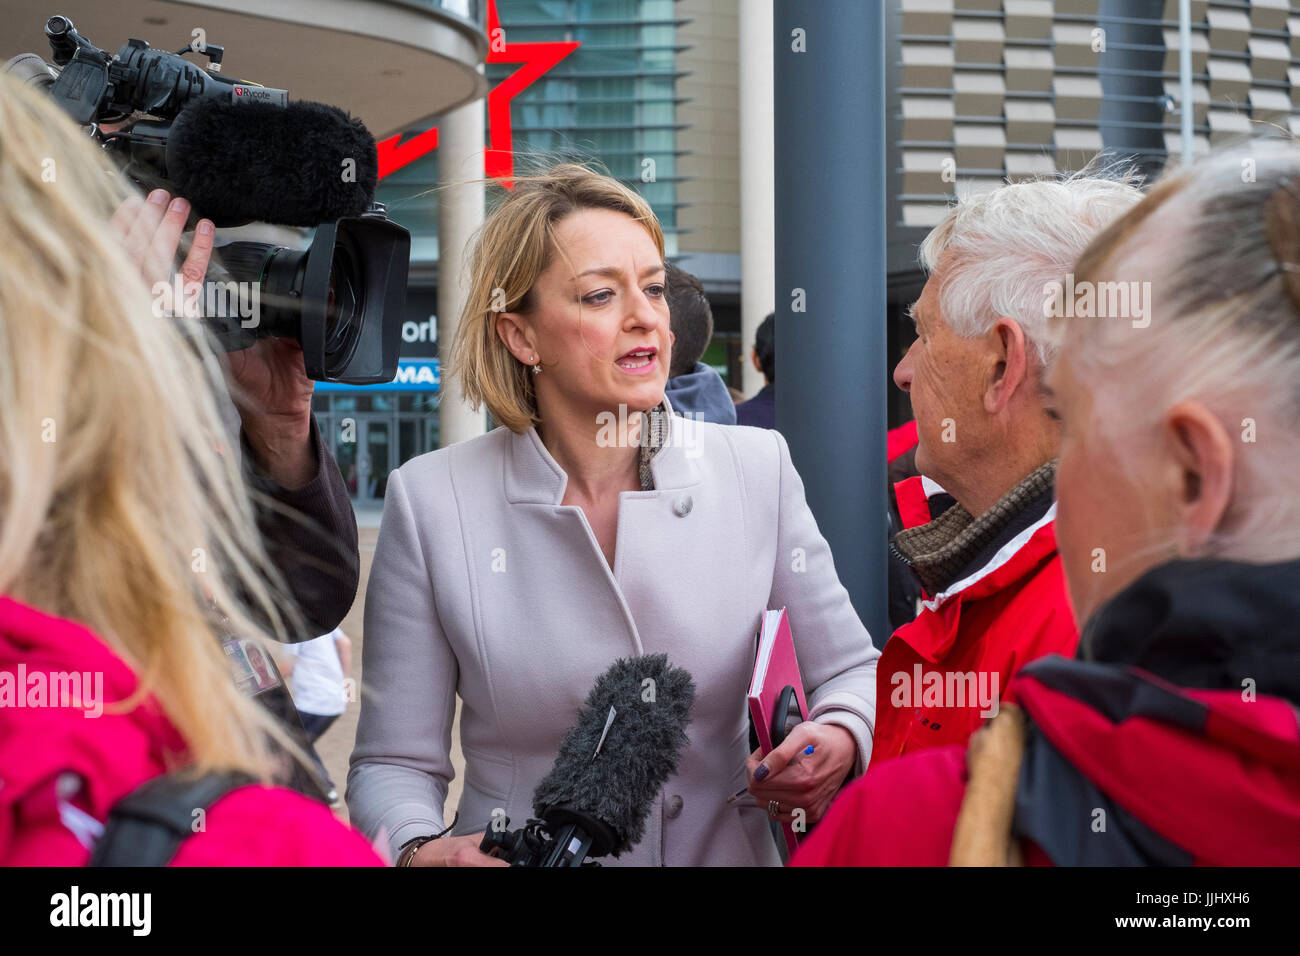 BBC political journalist Laura Kuenssberg interviewing people in Telford, Shropshire, England, UK - Stock Image